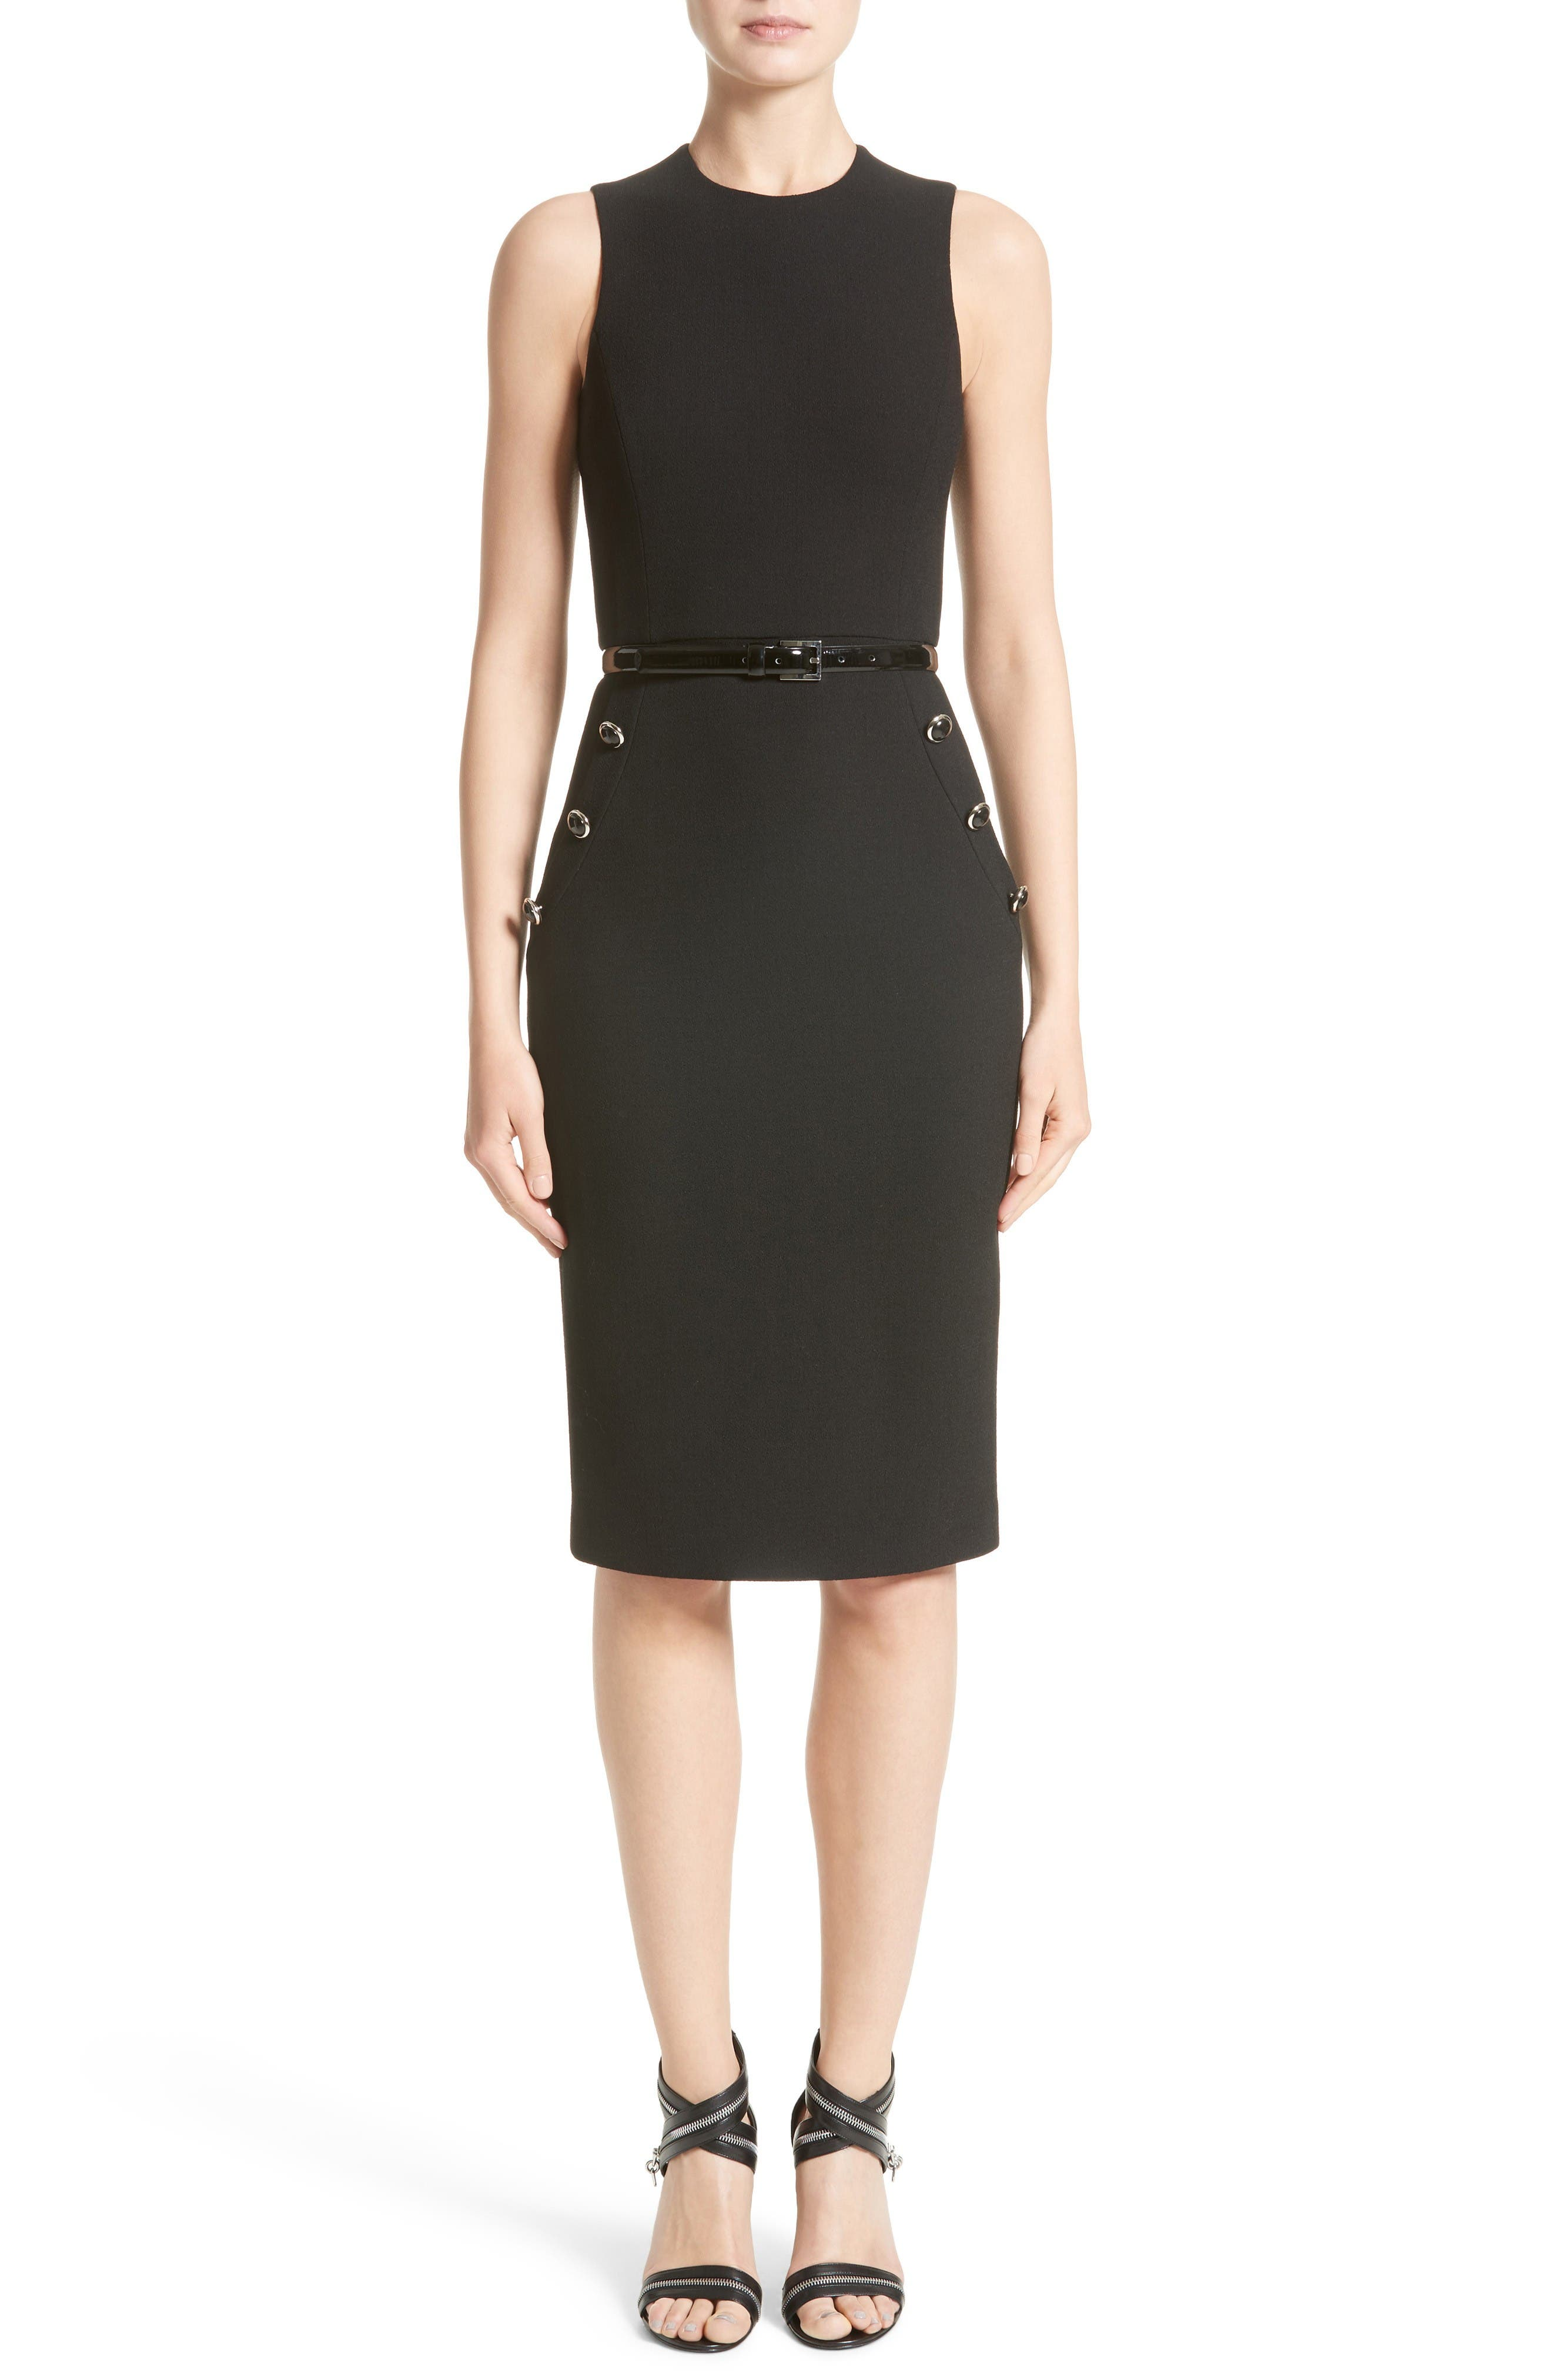 Michael Kors Belted Stretch Bouclé Crepe Sheath Dress